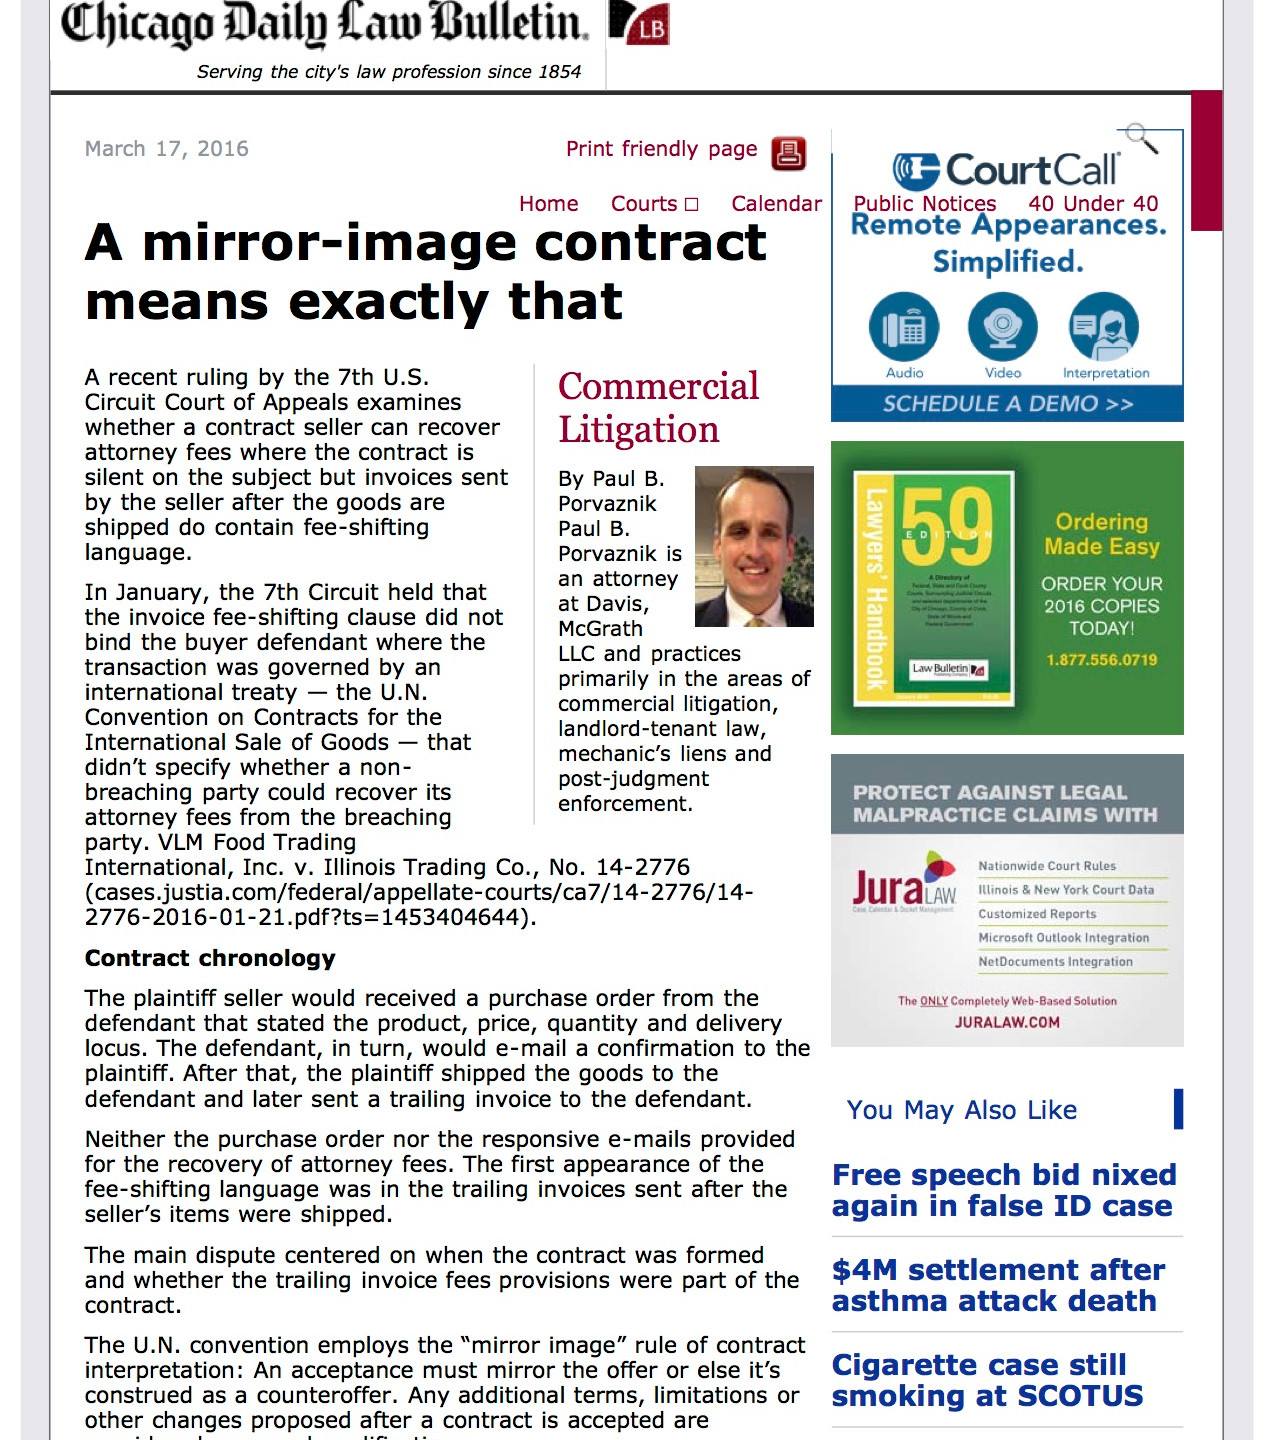 Chicago Daily Law Bulletin - A mirror-image contract means exactly that